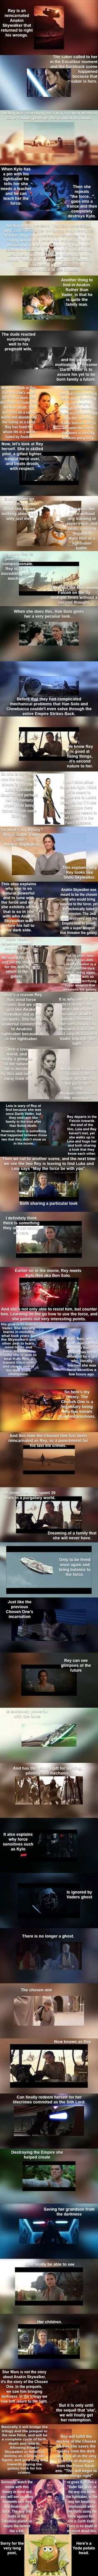 Star Wars facts | Webfail - Fail Pictures and Fail Videos